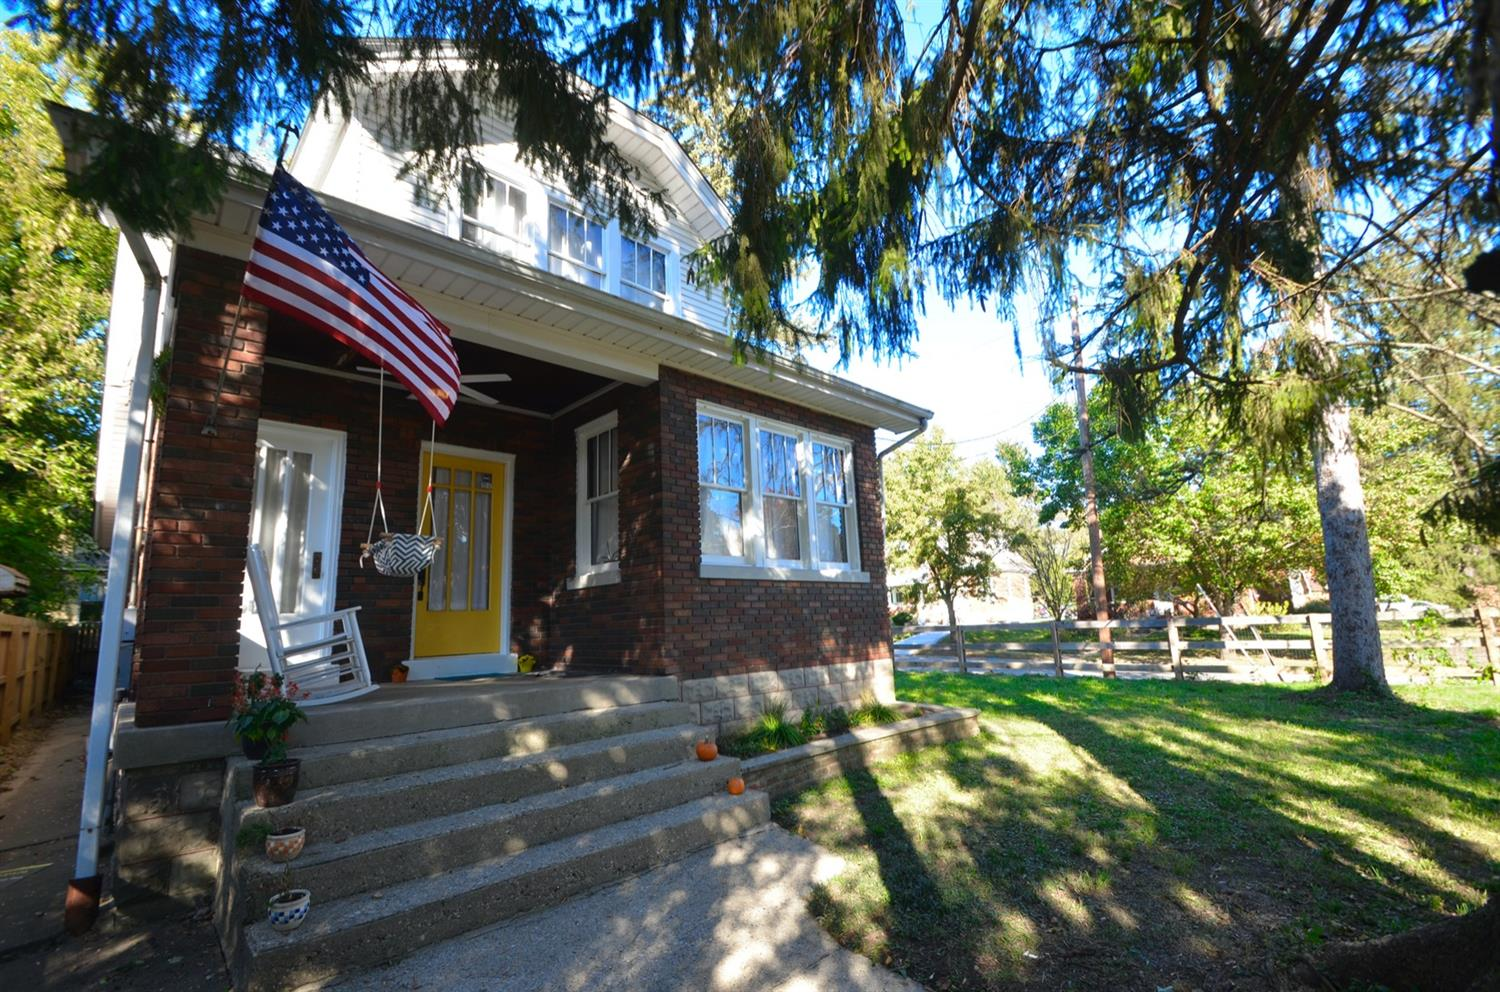 This charming Craftsman Bungalow is move in ready.  Located in a quiet neighborhood in Northside, it is a short half mile walk to Sidewinder Coffee Shop and other Hamilton Avenue hotspots.